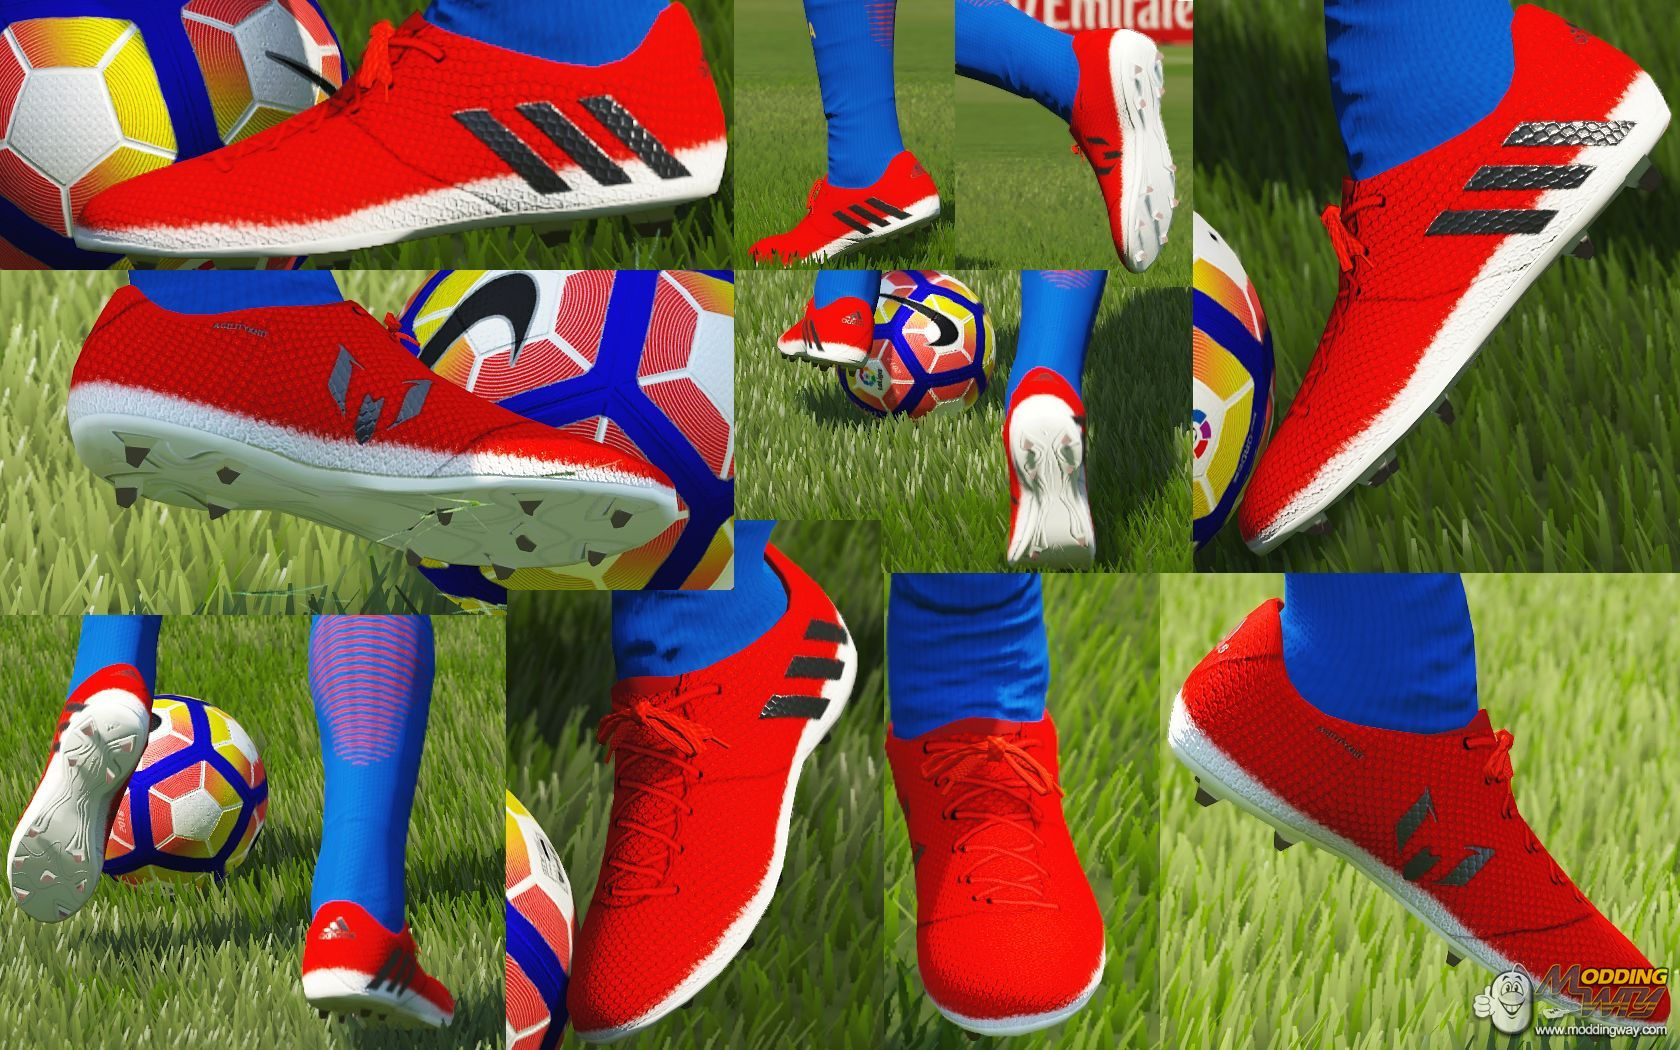 Folleto Vástago Seguro  Adidas Messi 16.1 Red Limit by Barrysun (Nabo78 editing) - FIFA 16 at  ModdingWay